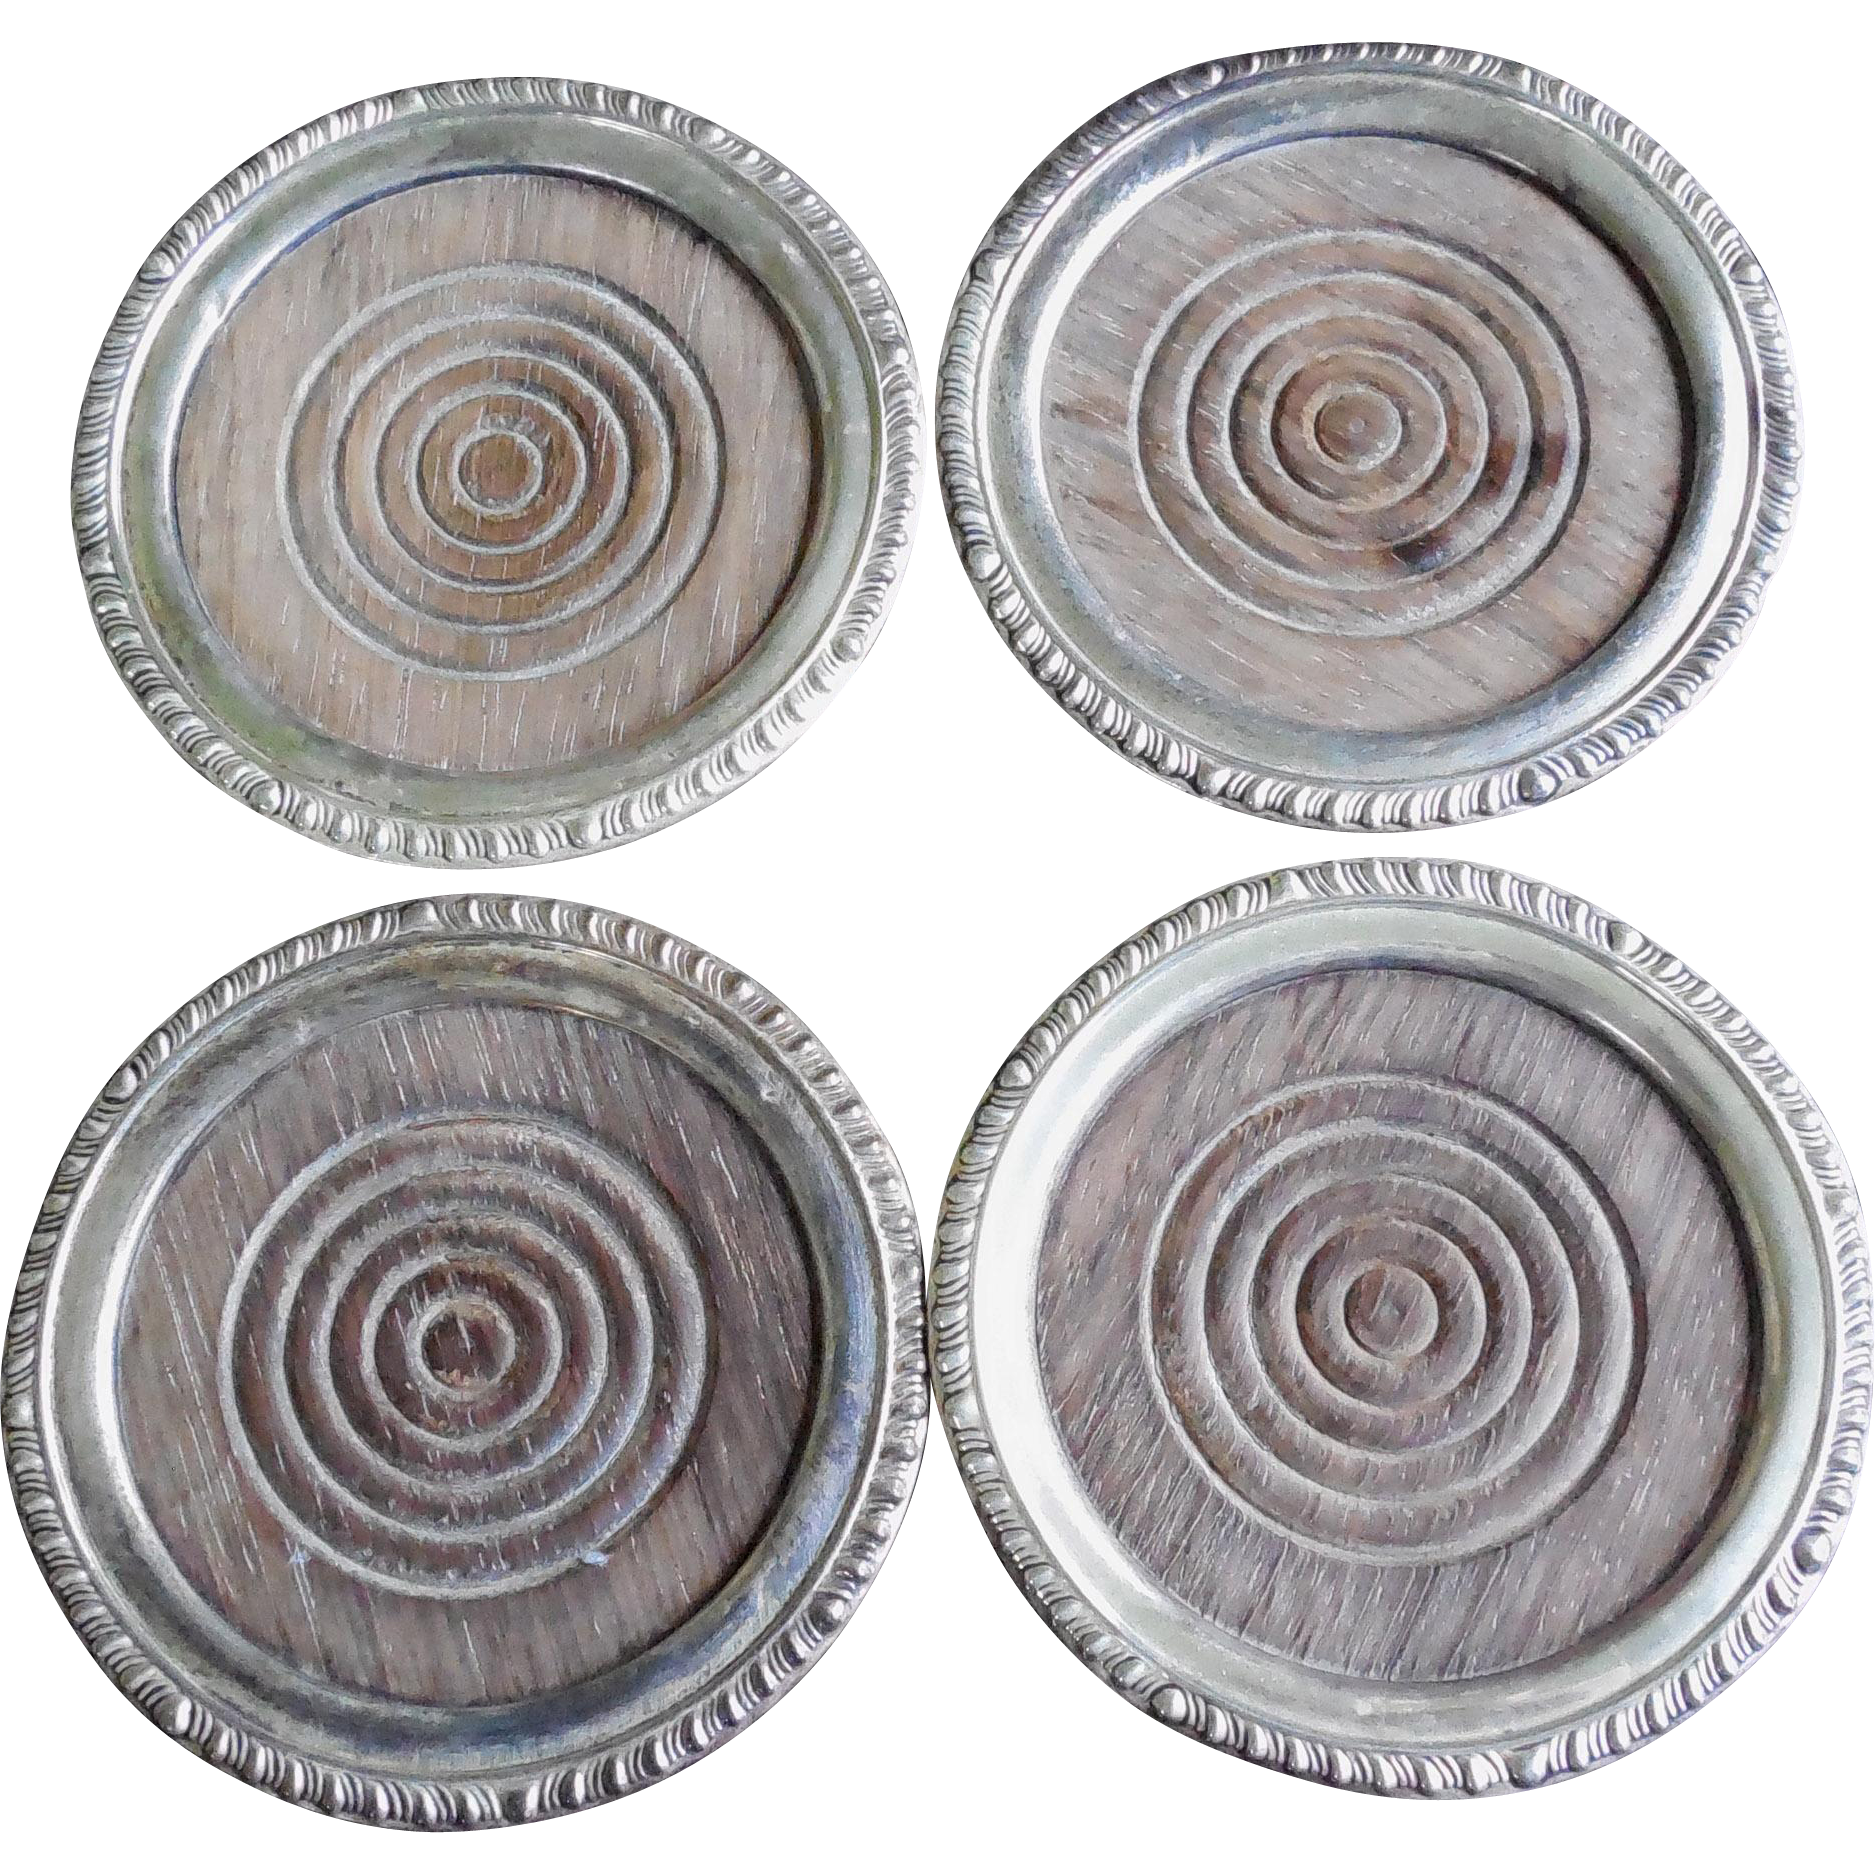 Four Antique Sterling Silver & Wood Coasters - Signed Frank M. Whiting Sterling